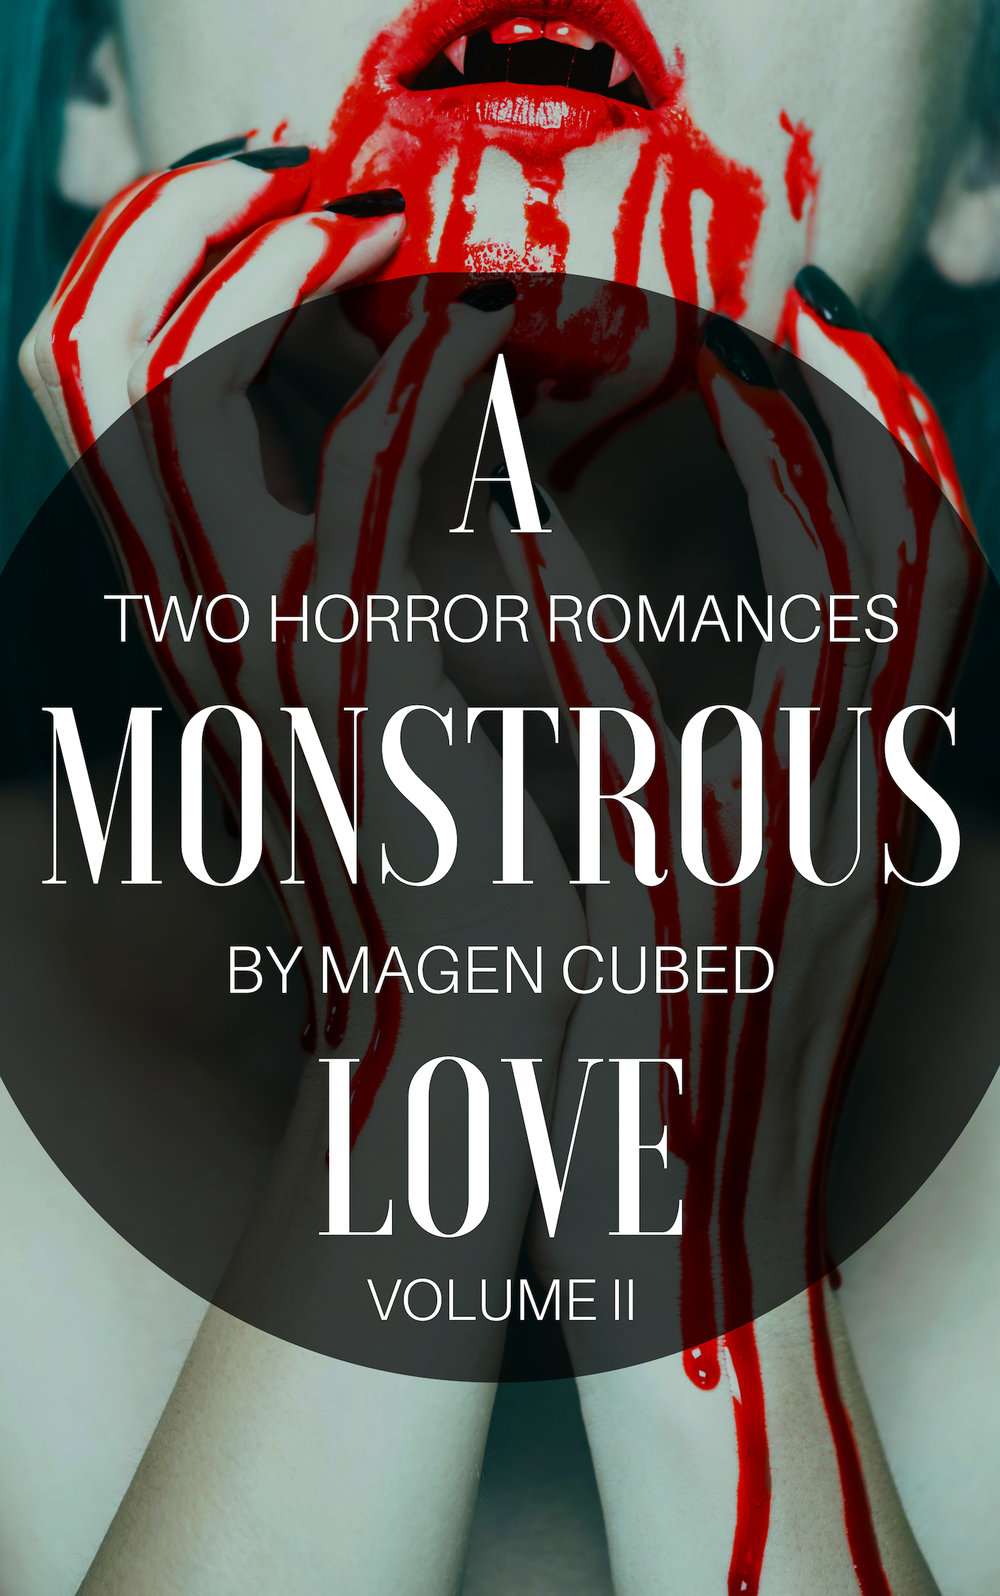 """Just in time for Halloween…."" - A MONSTROUS LOVE VOLUME II, two F/F erotic  horror romances. This year, a woman gives herself in every way to the demon she loves in BLOOD AND BREATH, while a vampire submissive does her best to please her human domme in HUNGER IN BONDAGE. Demons, vampires, leather, and blood in two short stories about monstrous women in love.  AVAILABLE ON AMAZONAVAILABLE ON ITCH.IO"